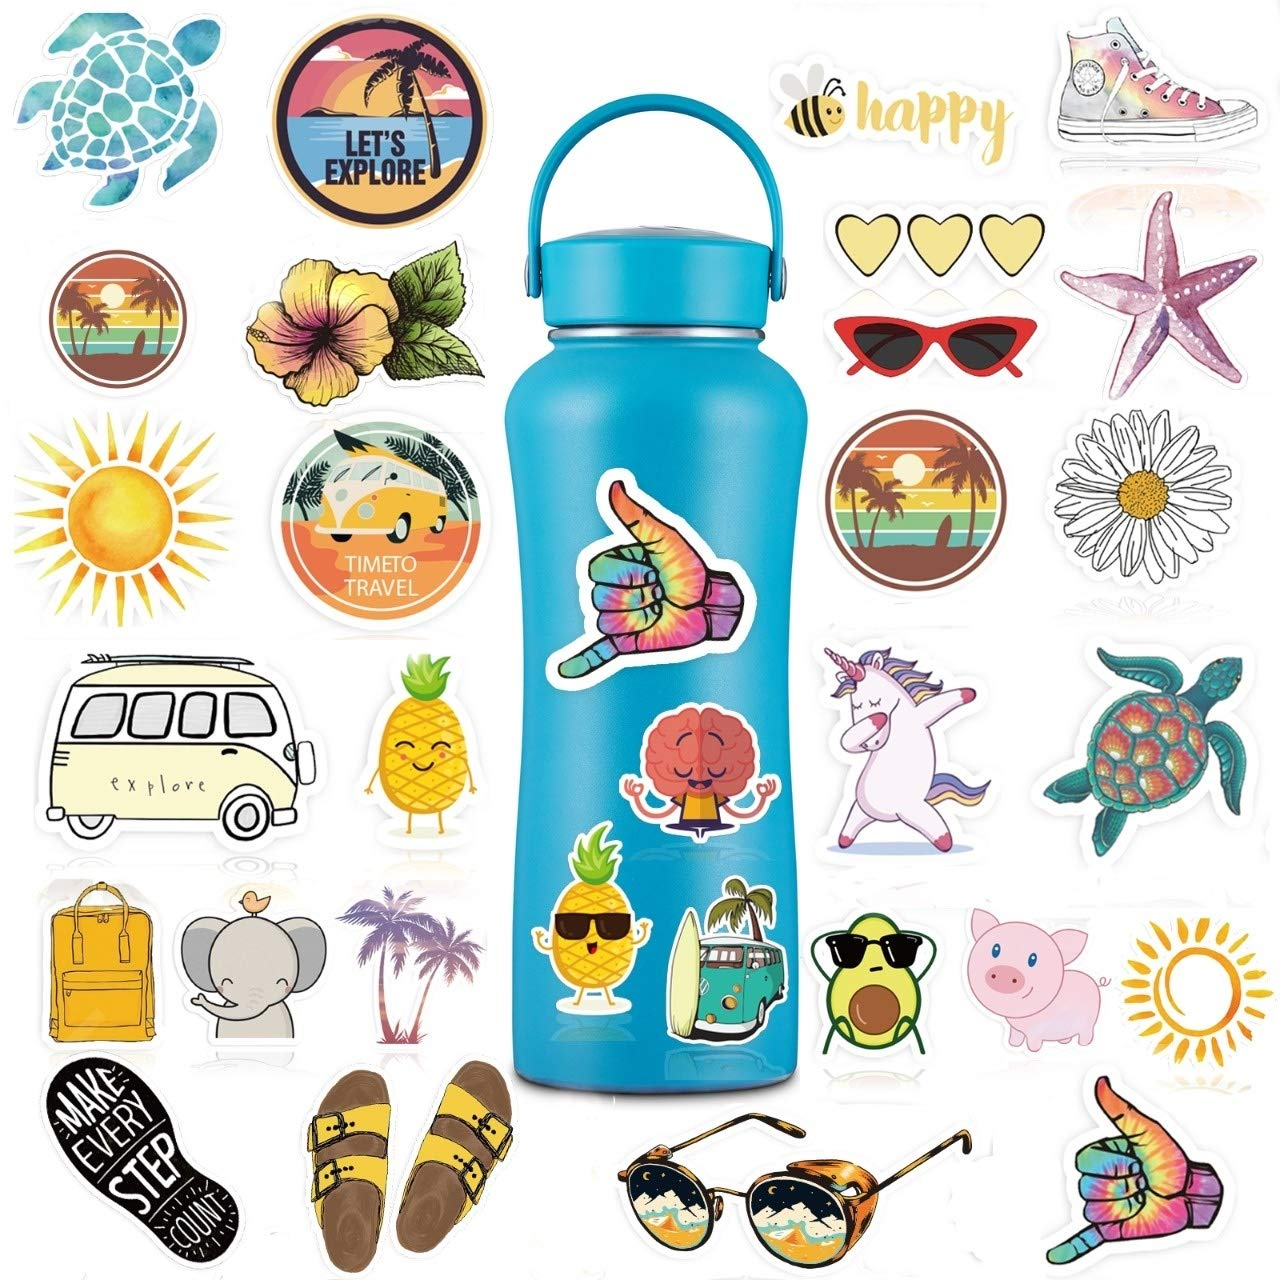 30 FUN-IN-THE-SUN STICKERS